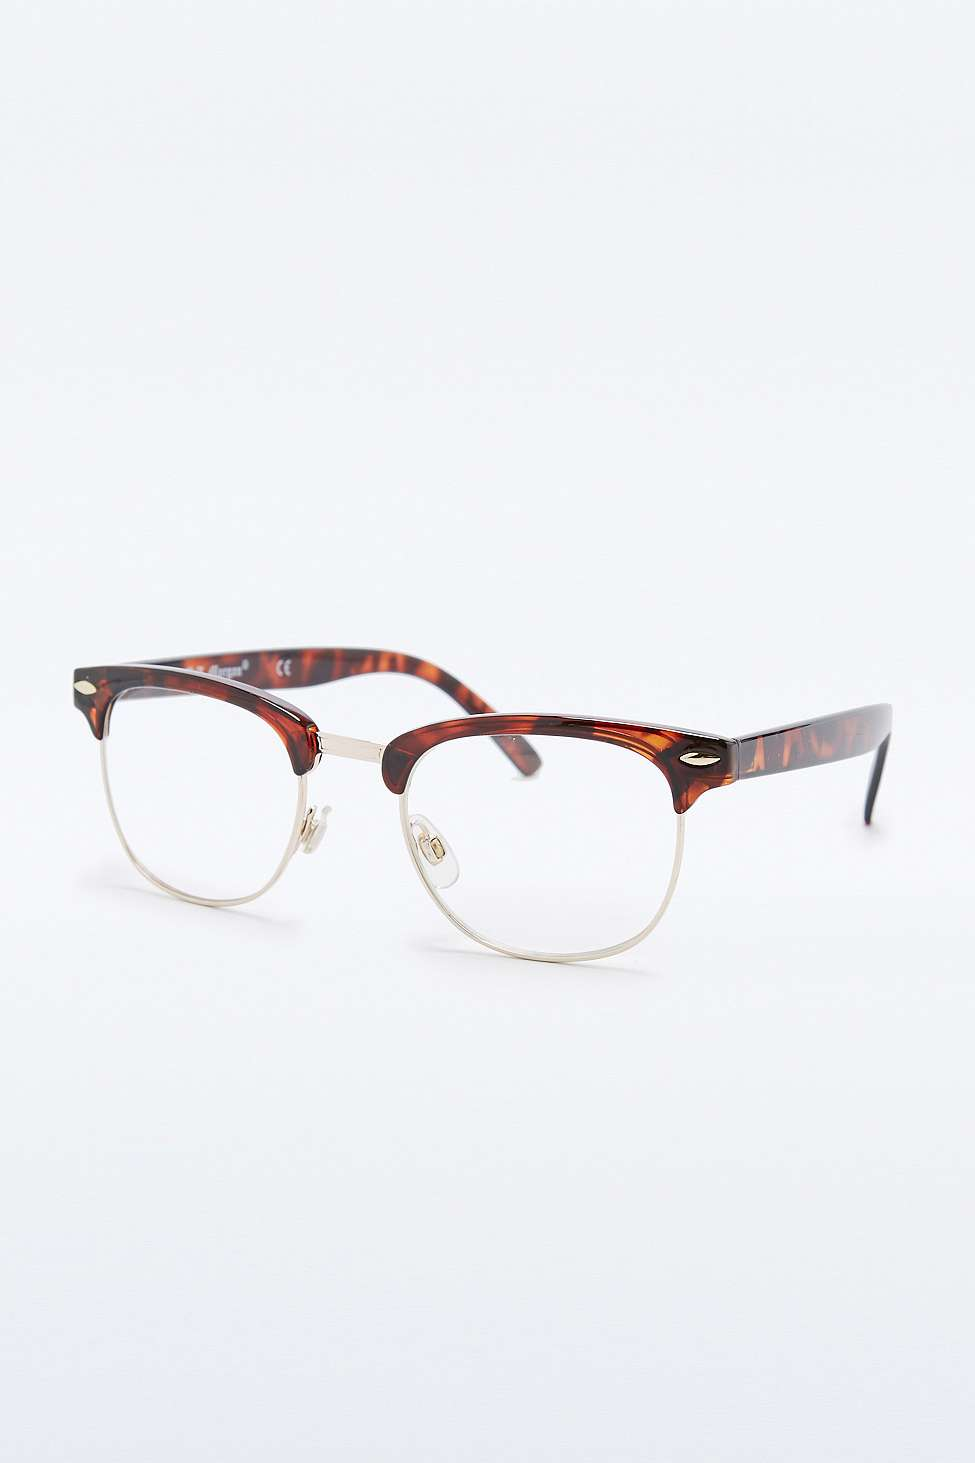 urban outfitters - Soho Tortoiseshell Clear Lens Readers 18